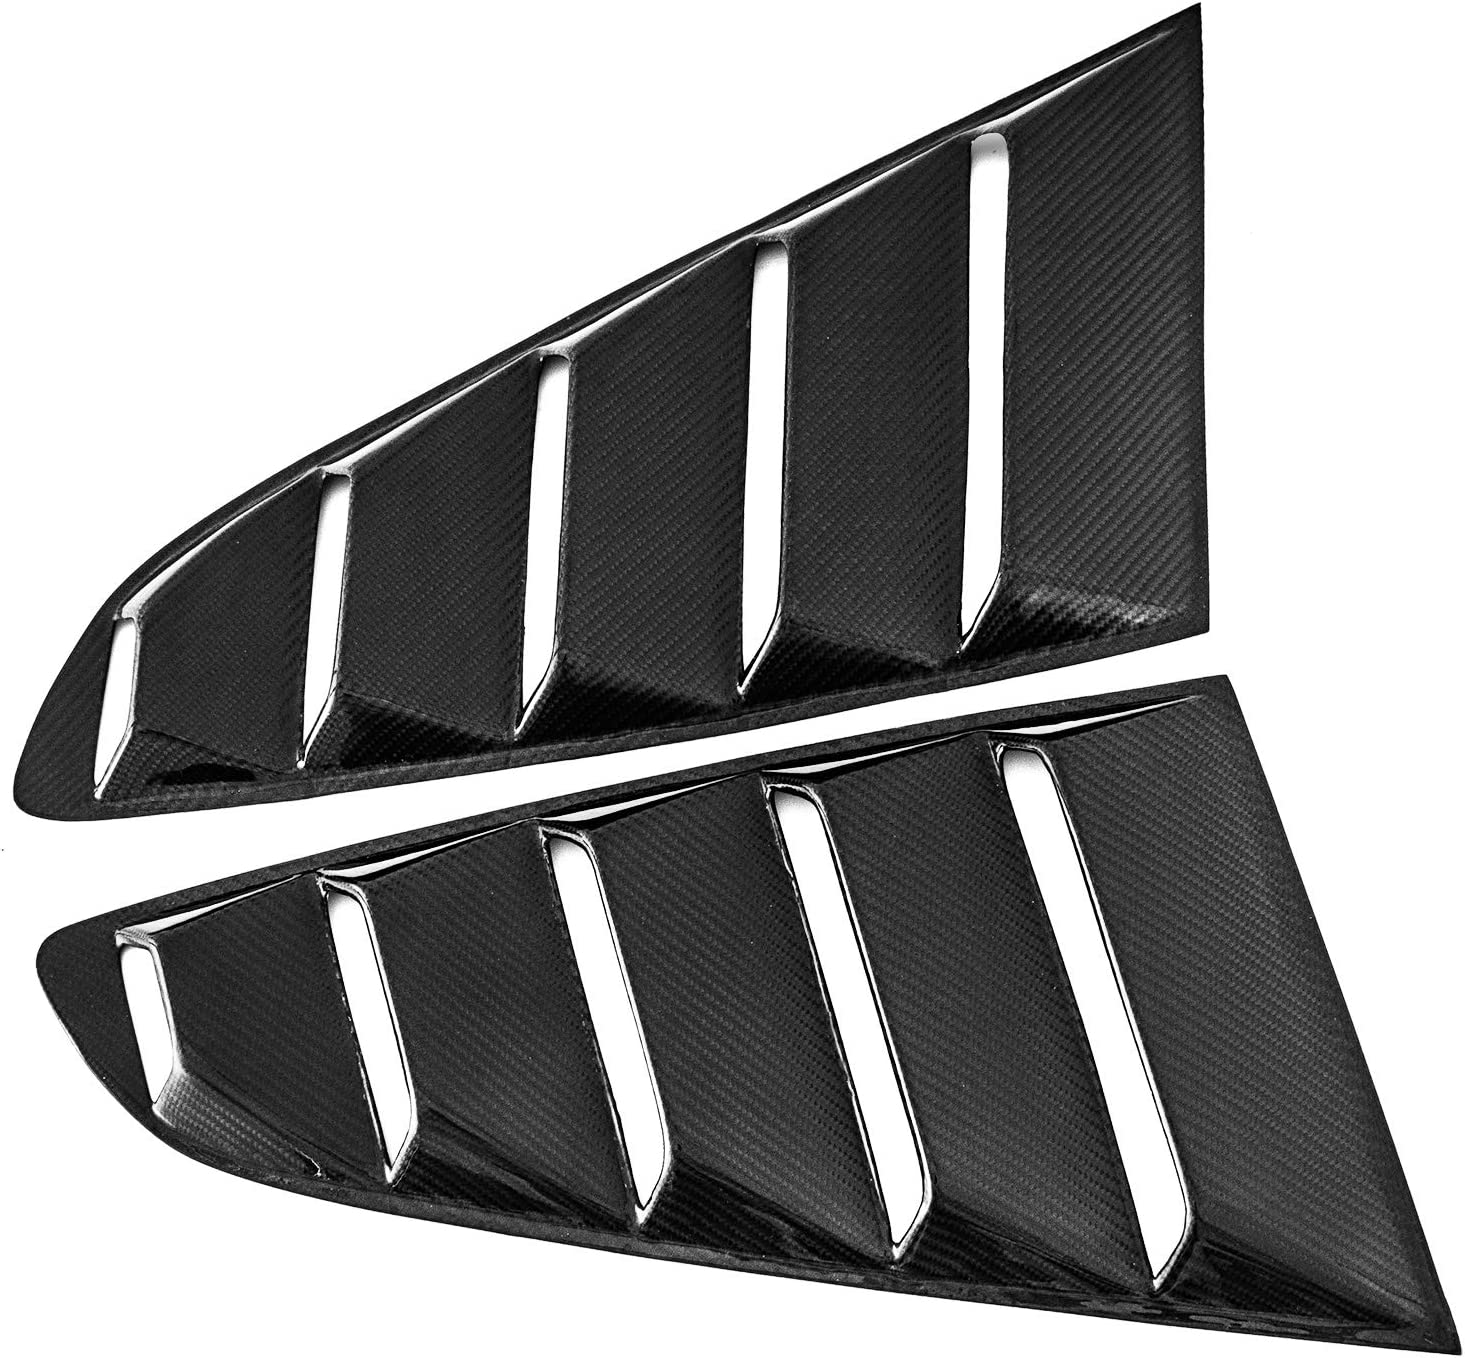 Bestauto Carbon Fiber Side Window Side Window Fender Louvers Shield Fit for Ford Mustang 2015-2018 GT Quarter Scoop Louver Cover